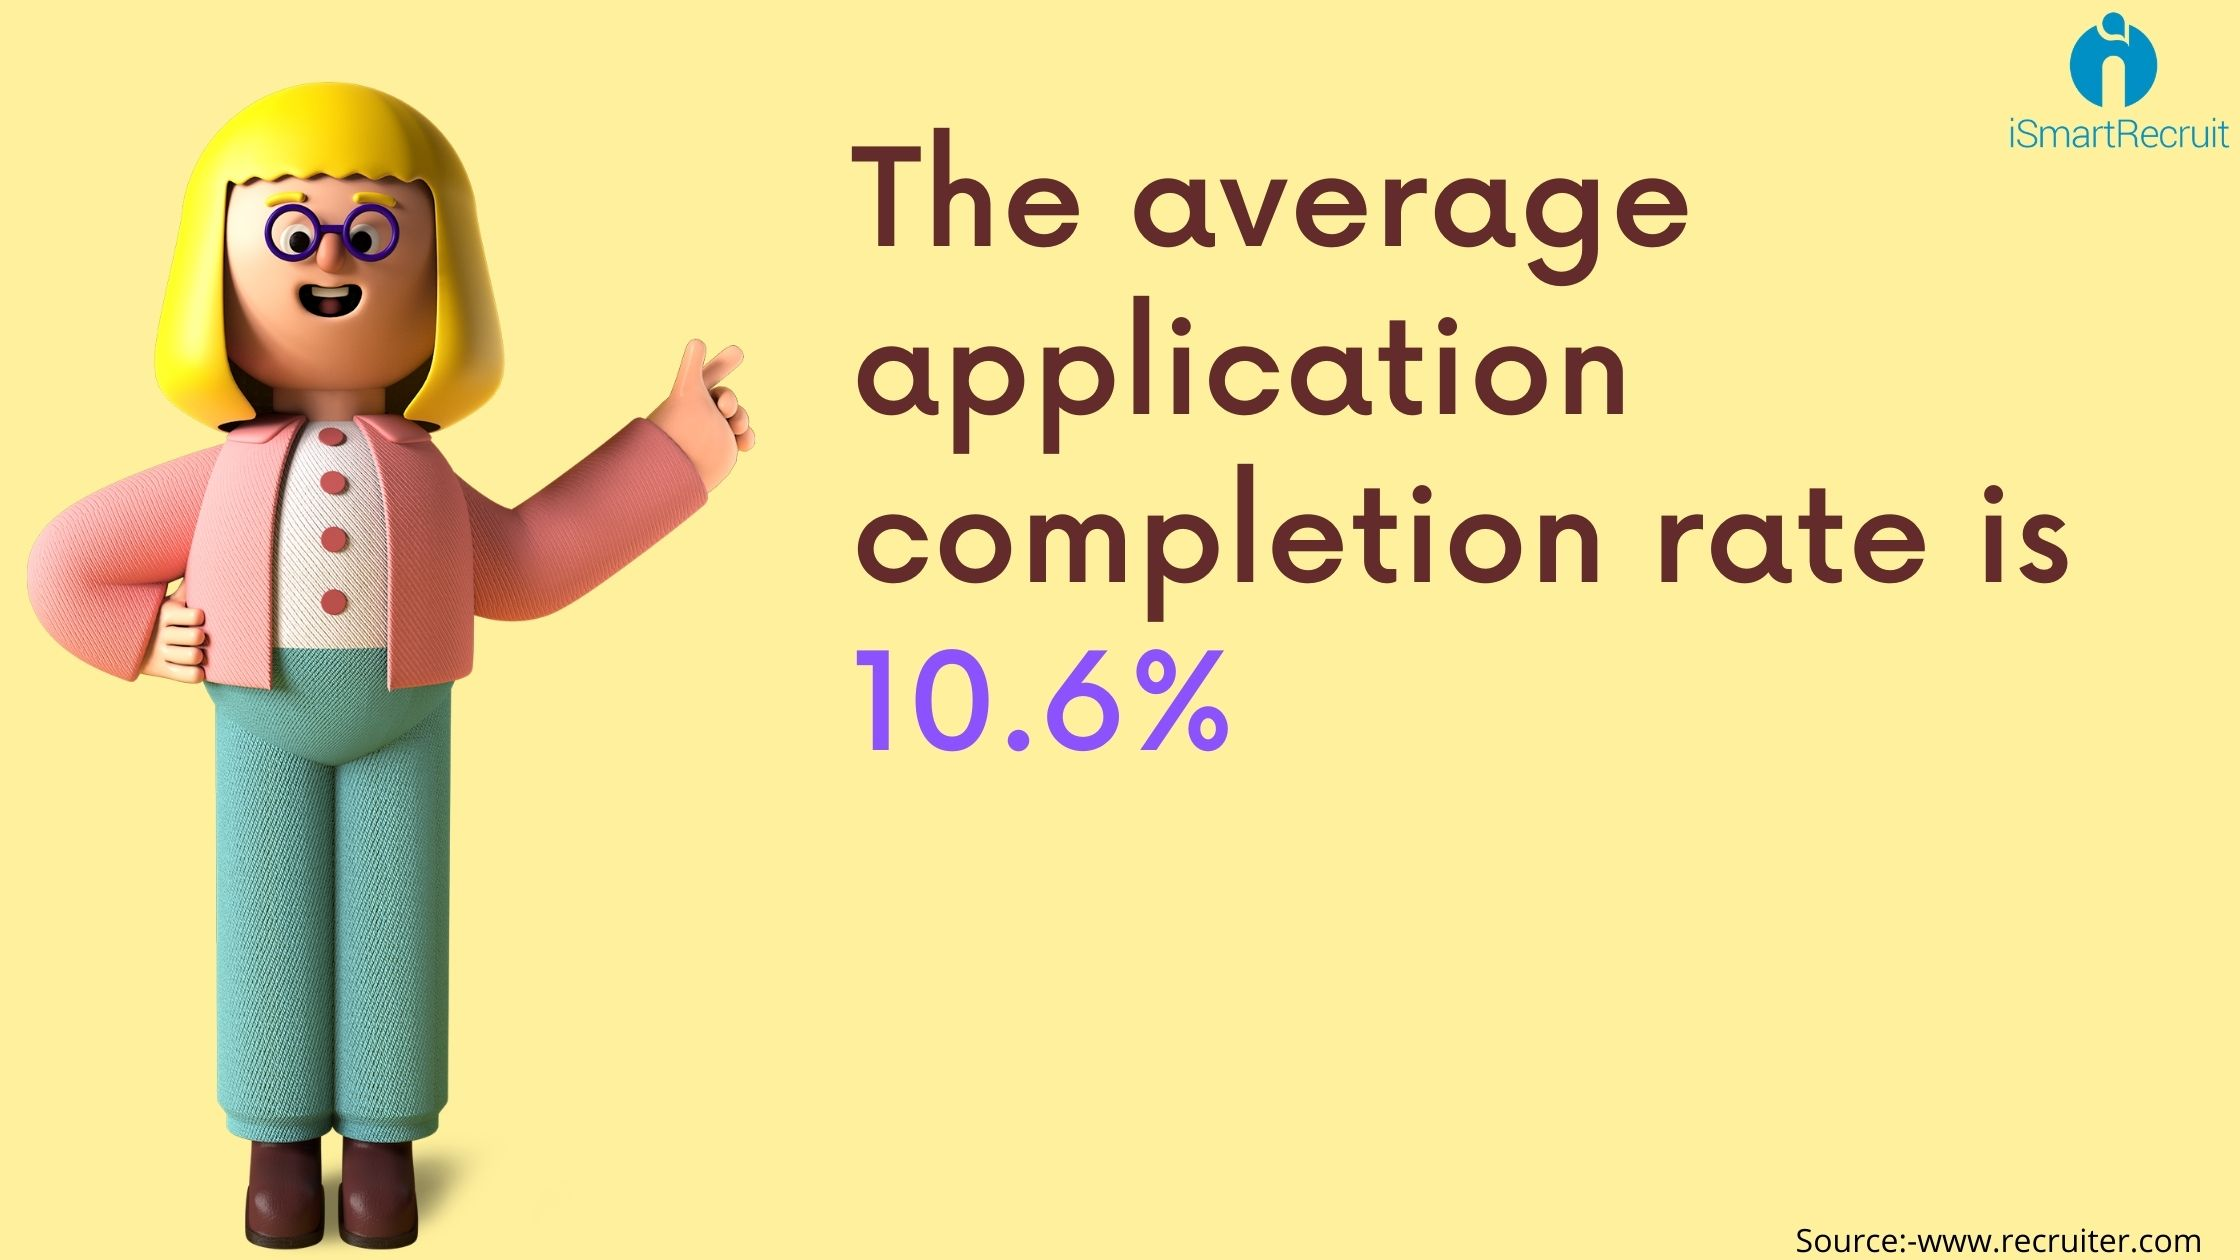 average application completion rate is 10.6%